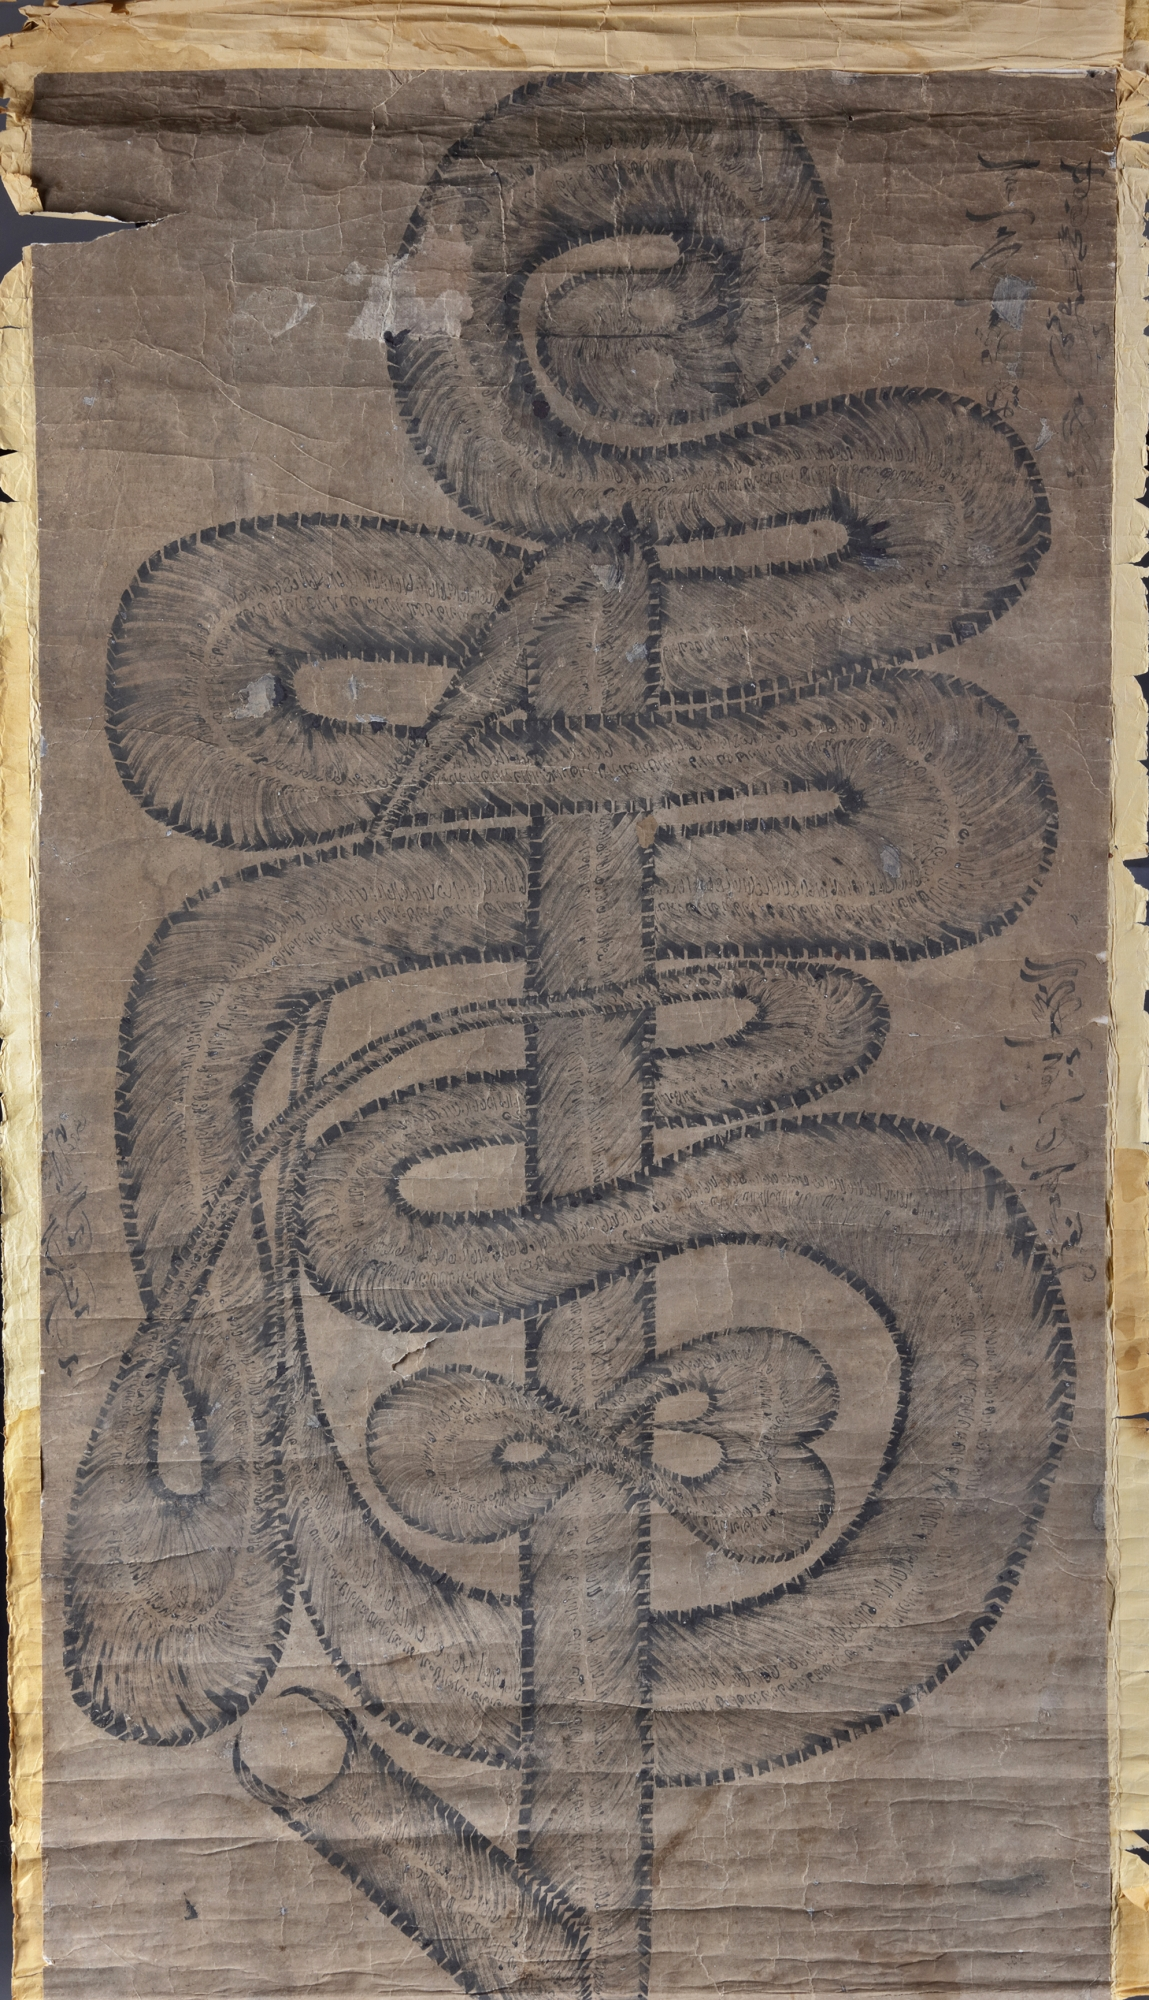 Lot 59 - A Chinese Islamic calligraphy